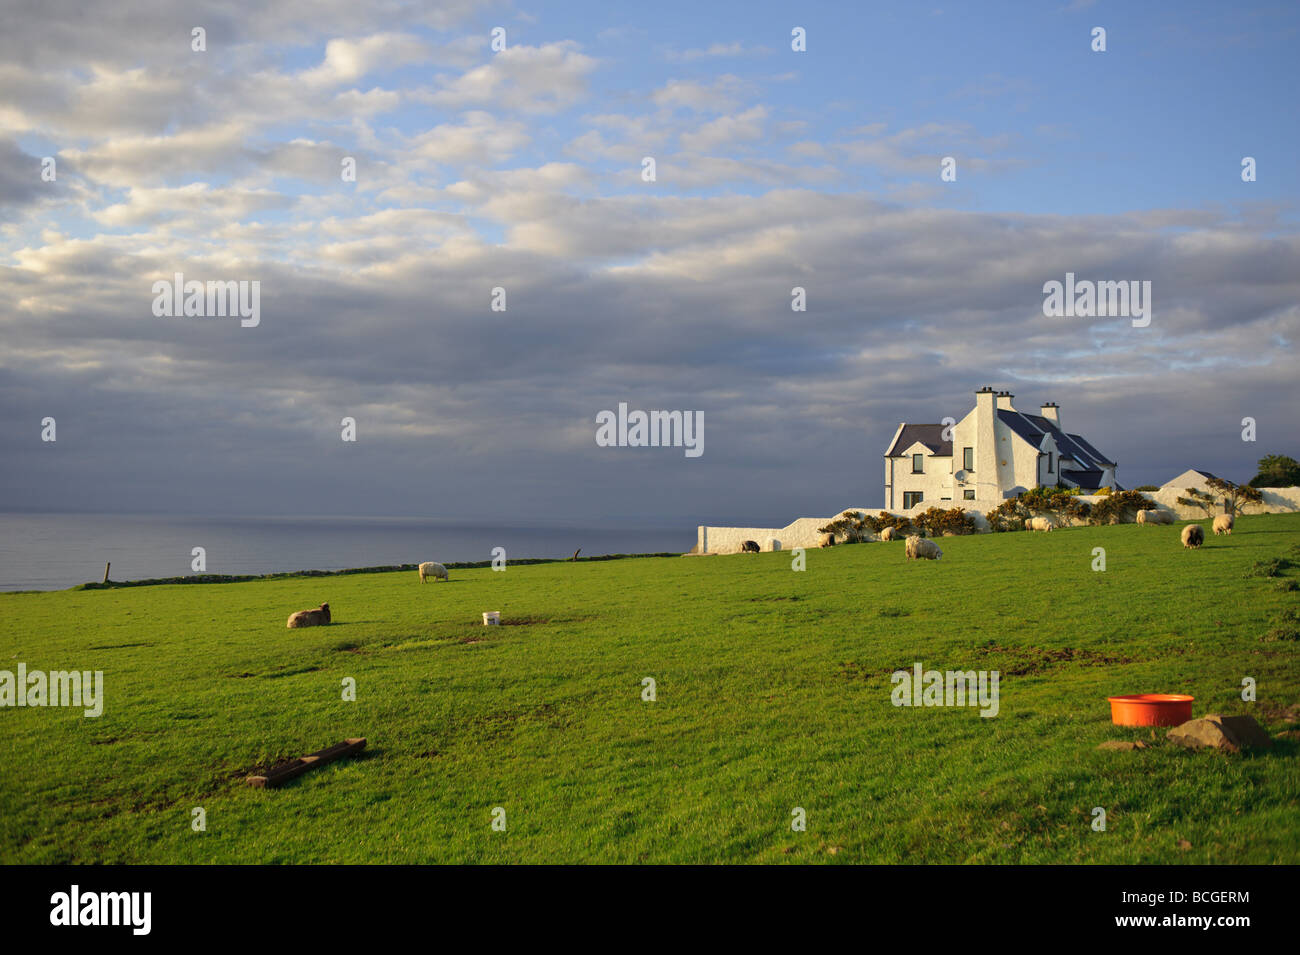 House and sheep and cliffs on the Giant s Causeway coastal drive in Northern Ireland sunset - Stock Image